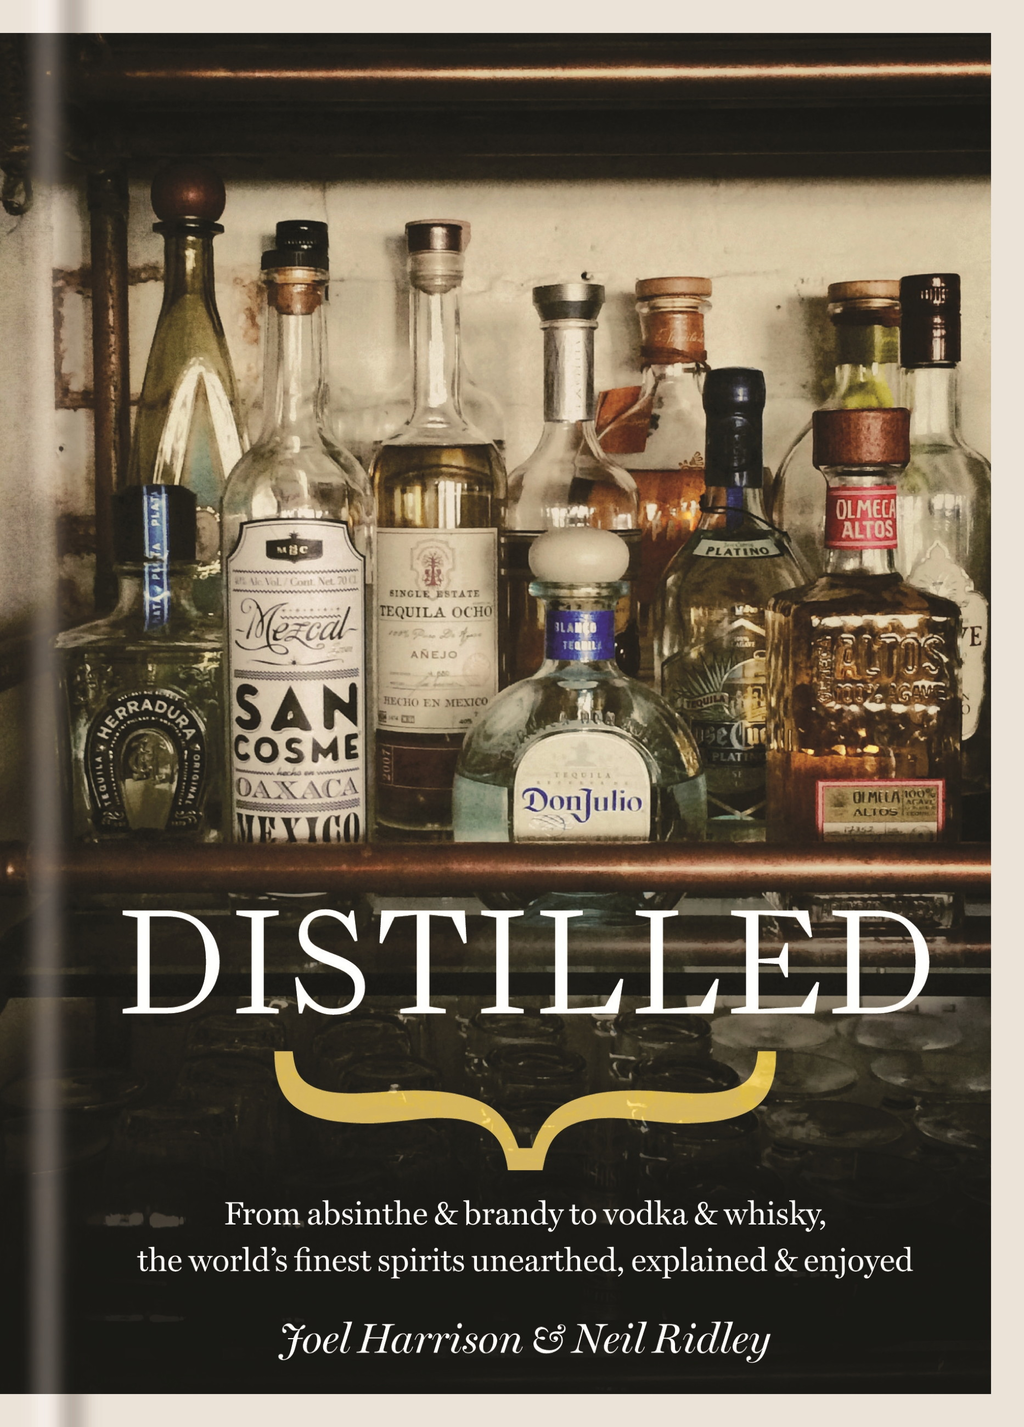 Distilled From absinthe & brandy to vodka & whisky,  the world's finest artisan spirits unearthed,  explained & enjoyed